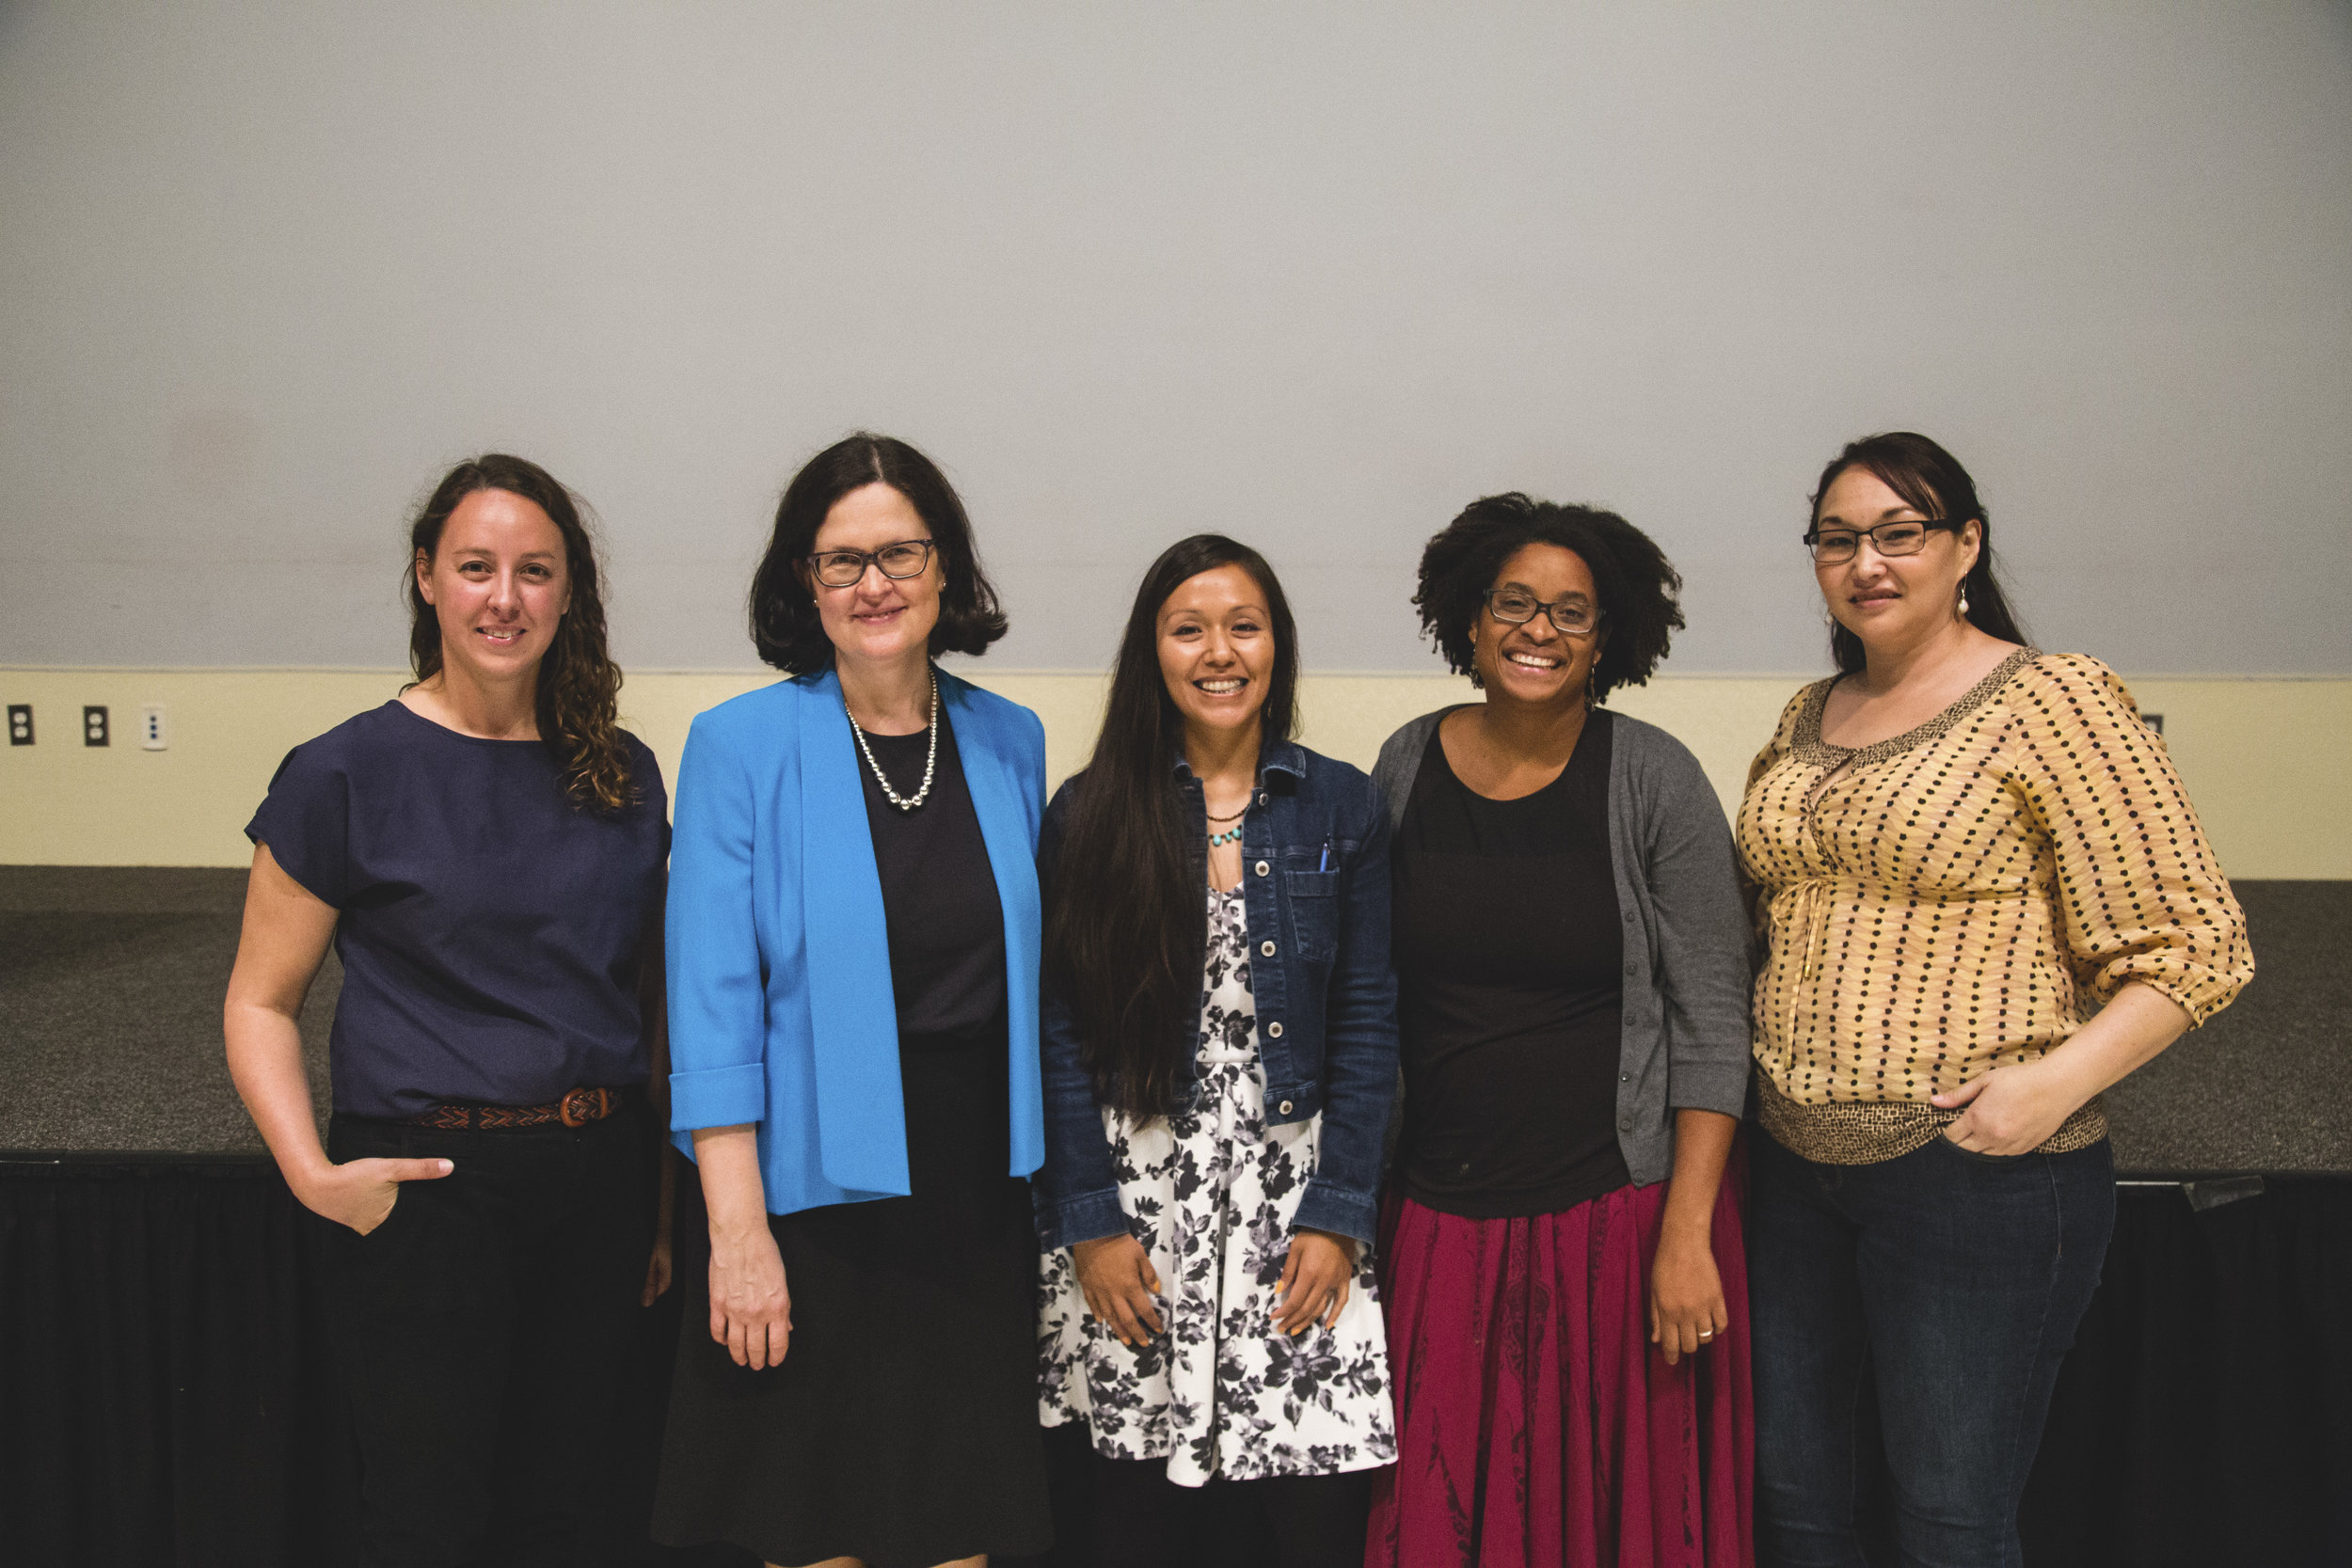 From left to right: Danea Johnson, Susannah Erler, Rocío Villalobos, Alesha Istvan, Koreena Malone. Photo by Tess Cagle.